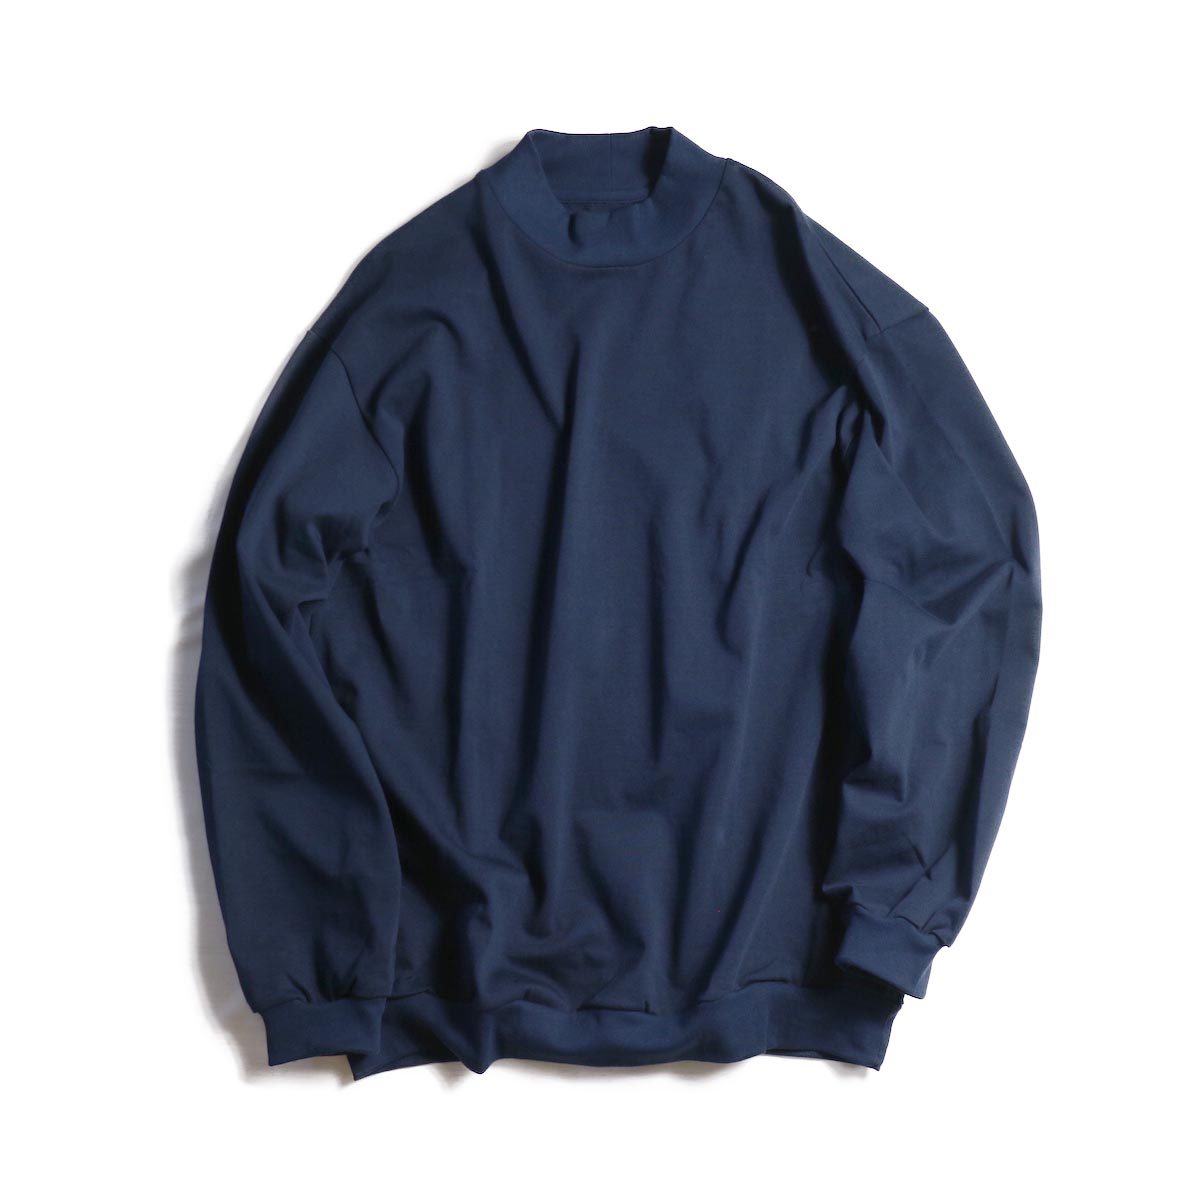 Living Concept / HEAVY MOCK NECK L/S T-SHIRT -Navy